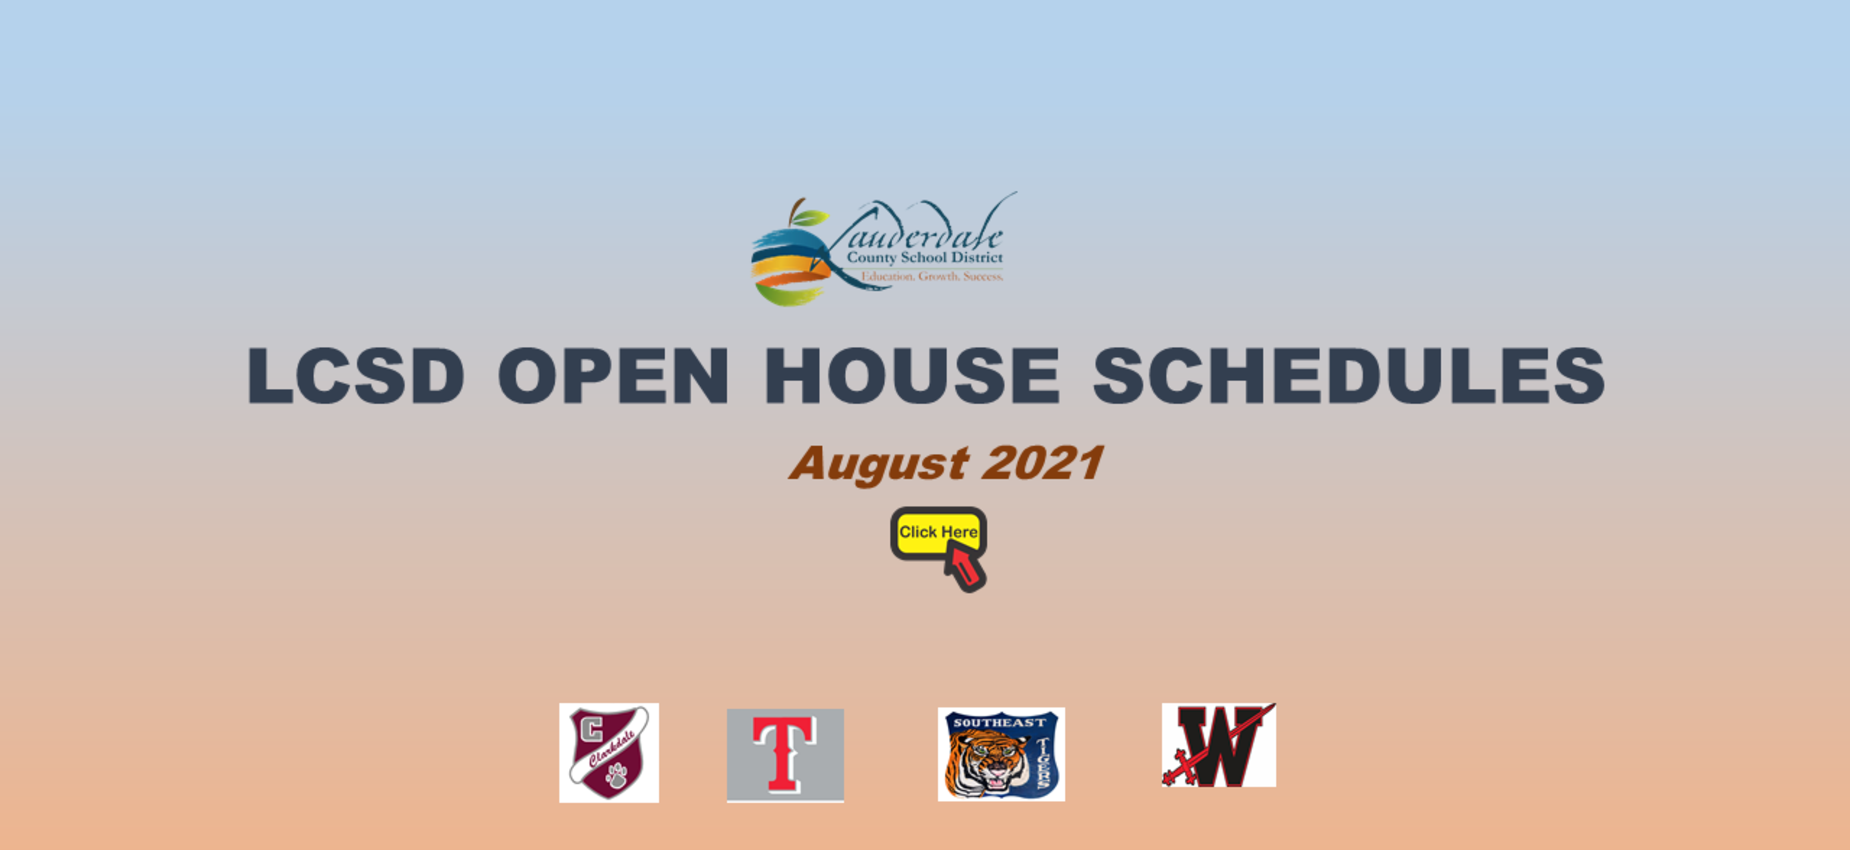 LCSD Open House Schedules